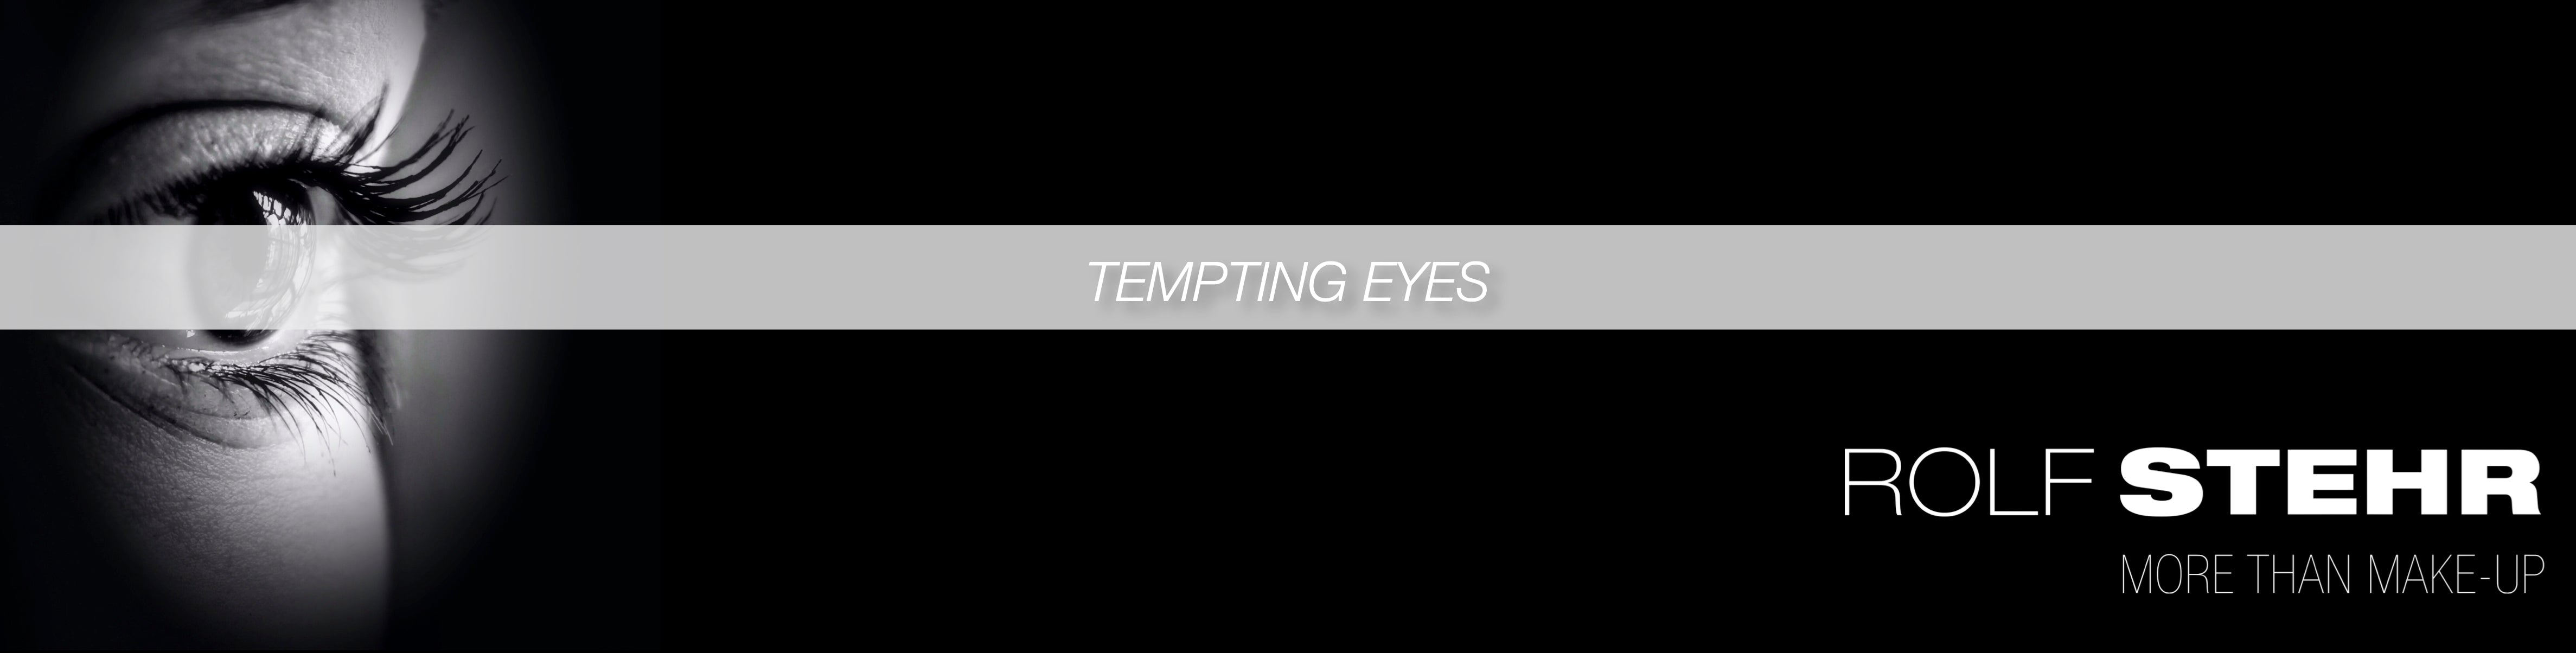 RS More than Make up - Tempting Eyes